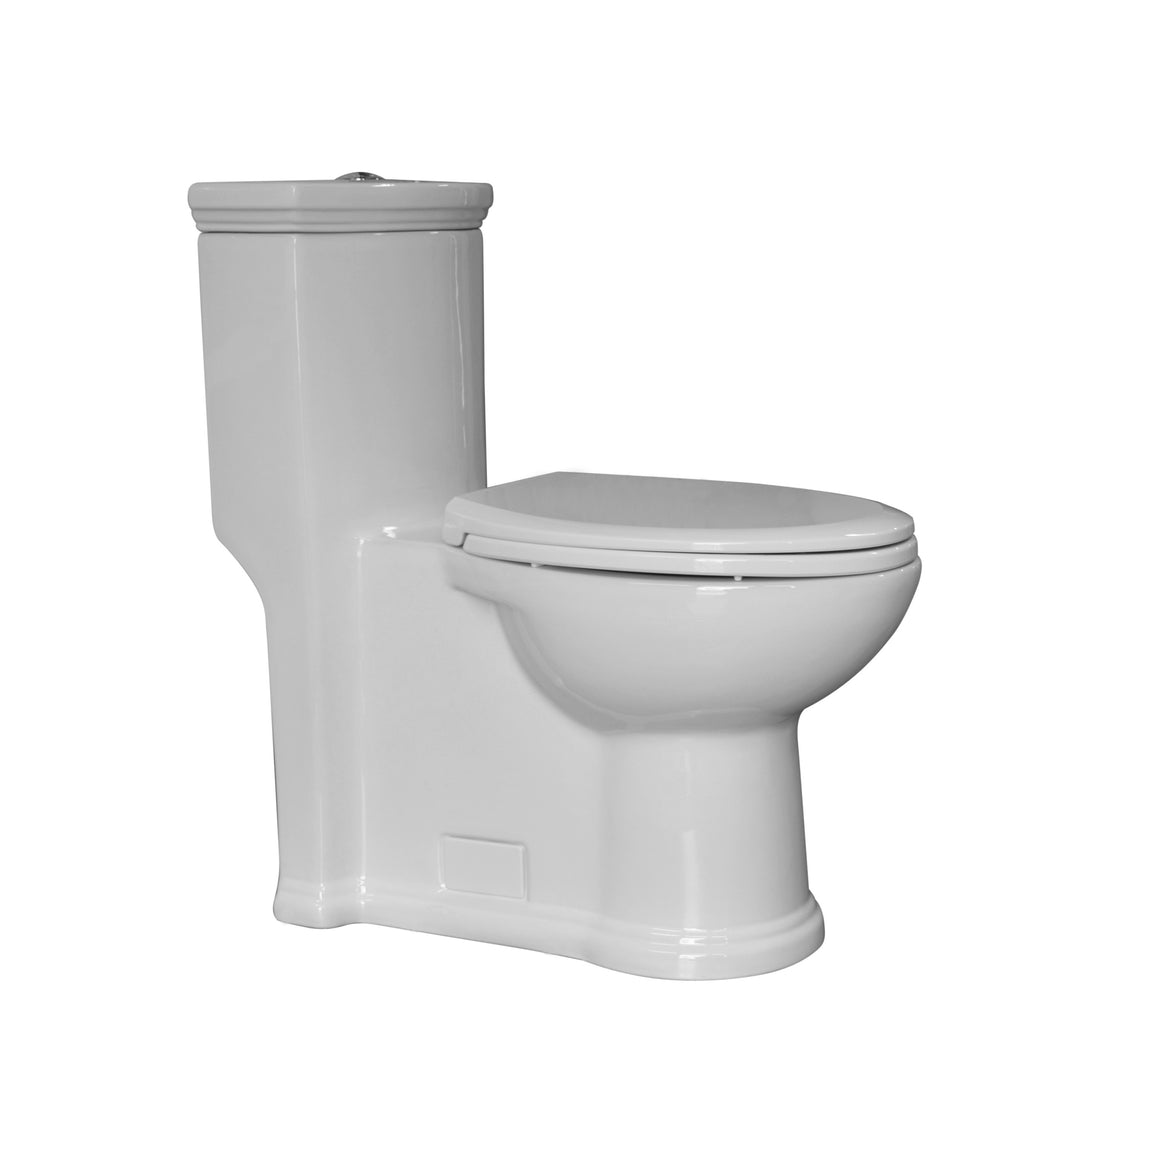 Eco-friendly one piece traditional toilet with a siphonic action dual flush system an elongated bowl